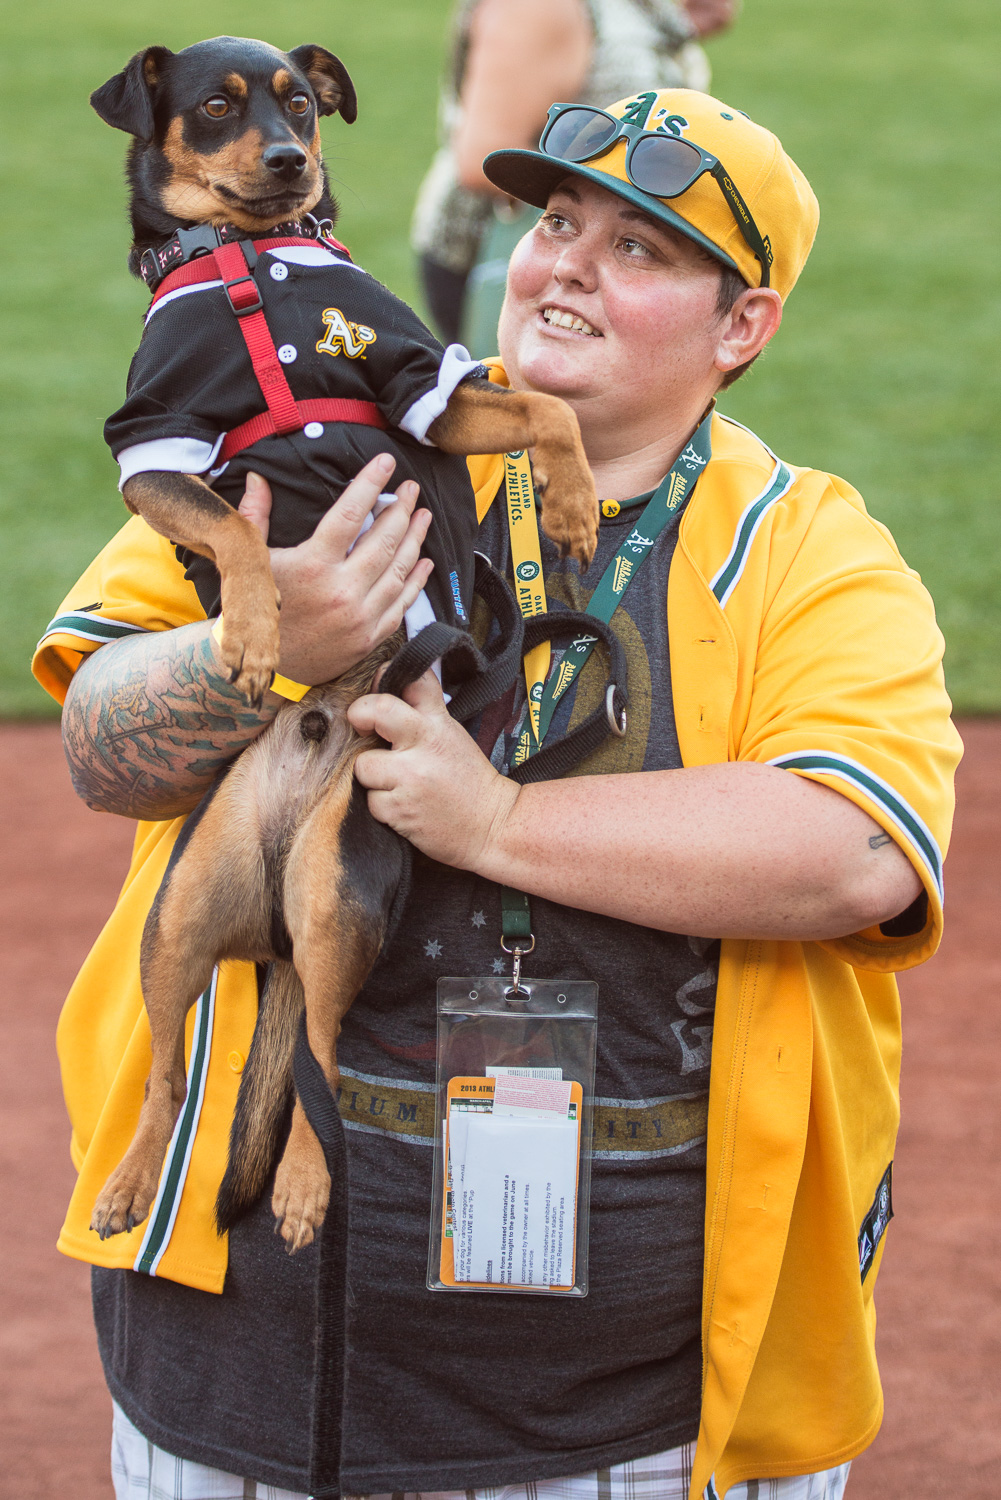 A's Dog Day at the Park // Ashley Petersen Photography